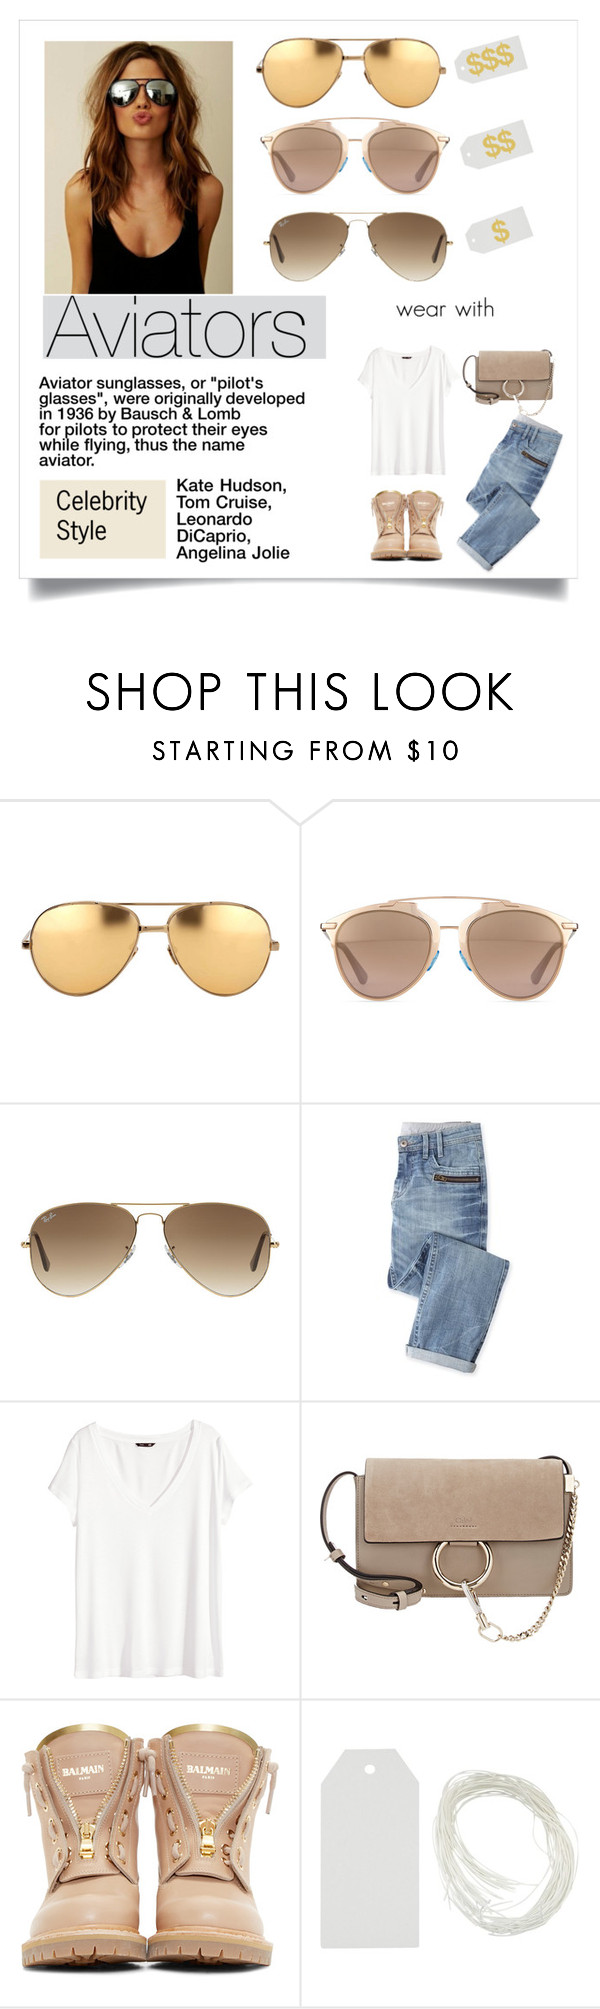 """Perfect Wardrobe: Aviators"" by stylekaris ❤ liked on Polyvore featuring Linda Farrow, Christian Dior, Ray-Ban, Wrap, H&M, Chloé and Balmain"